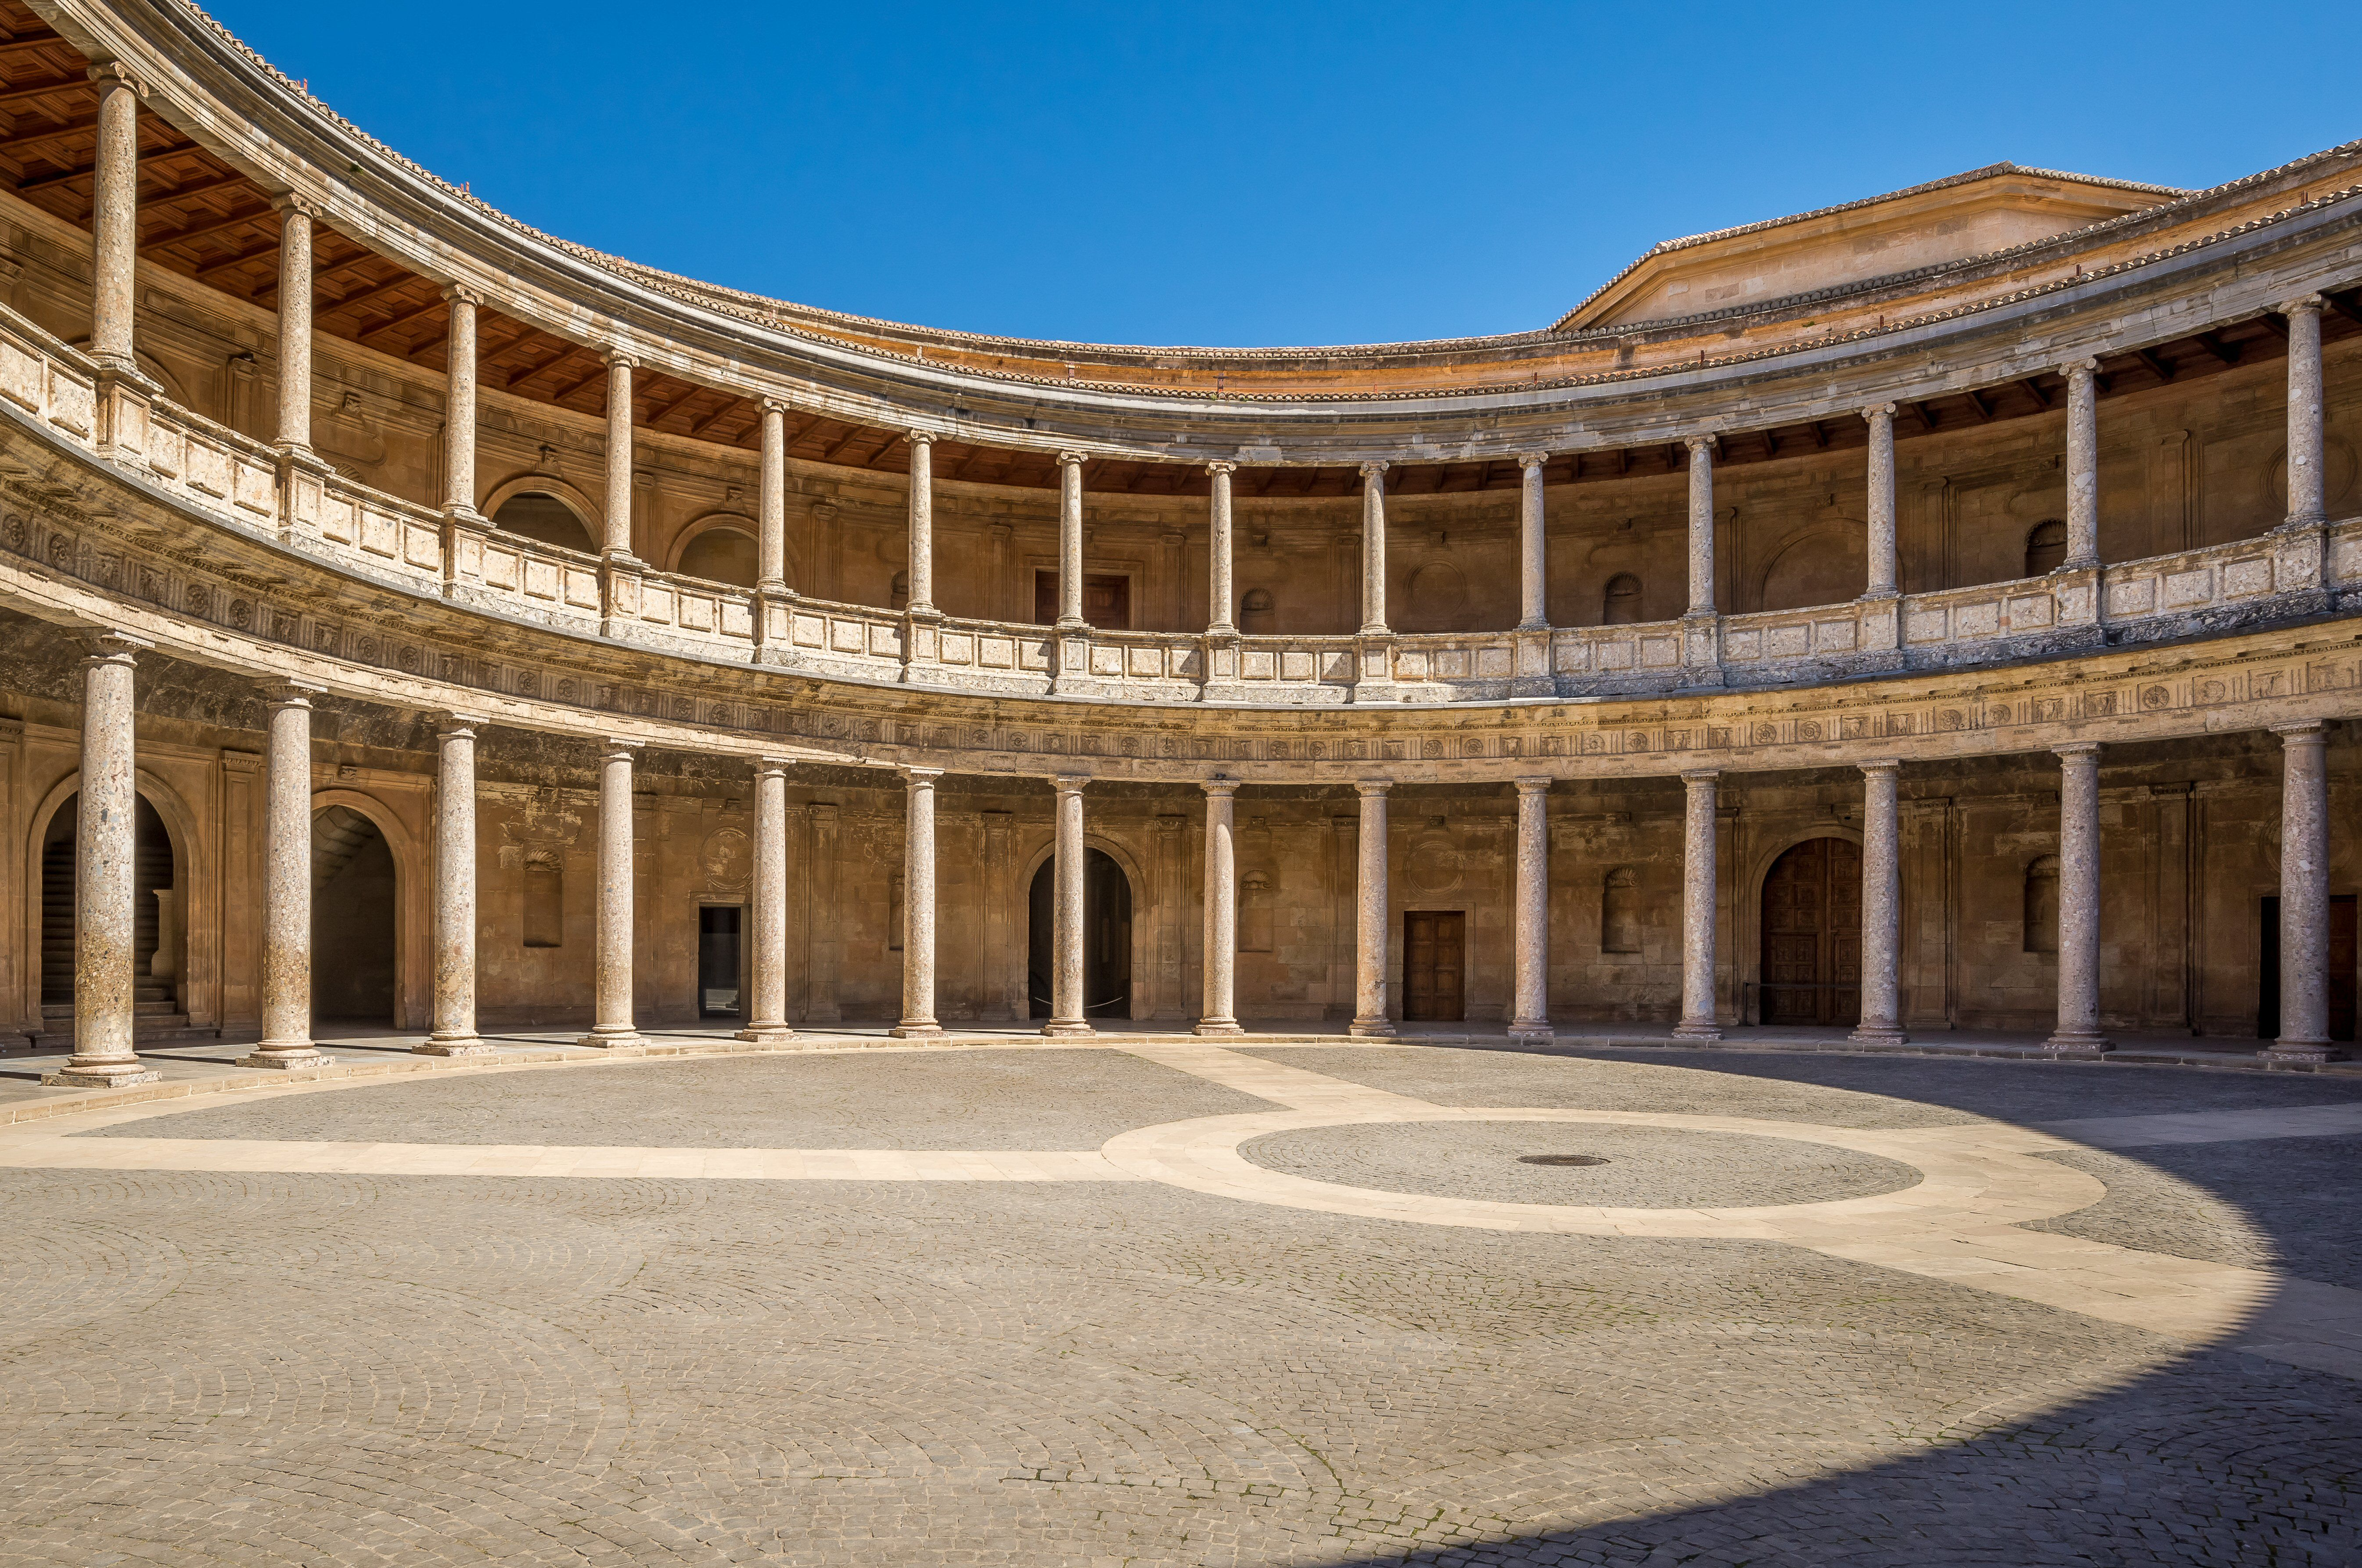 Circular Courtyard surrounded by two-tiered porticos symmetrically formed with Renaissance columns